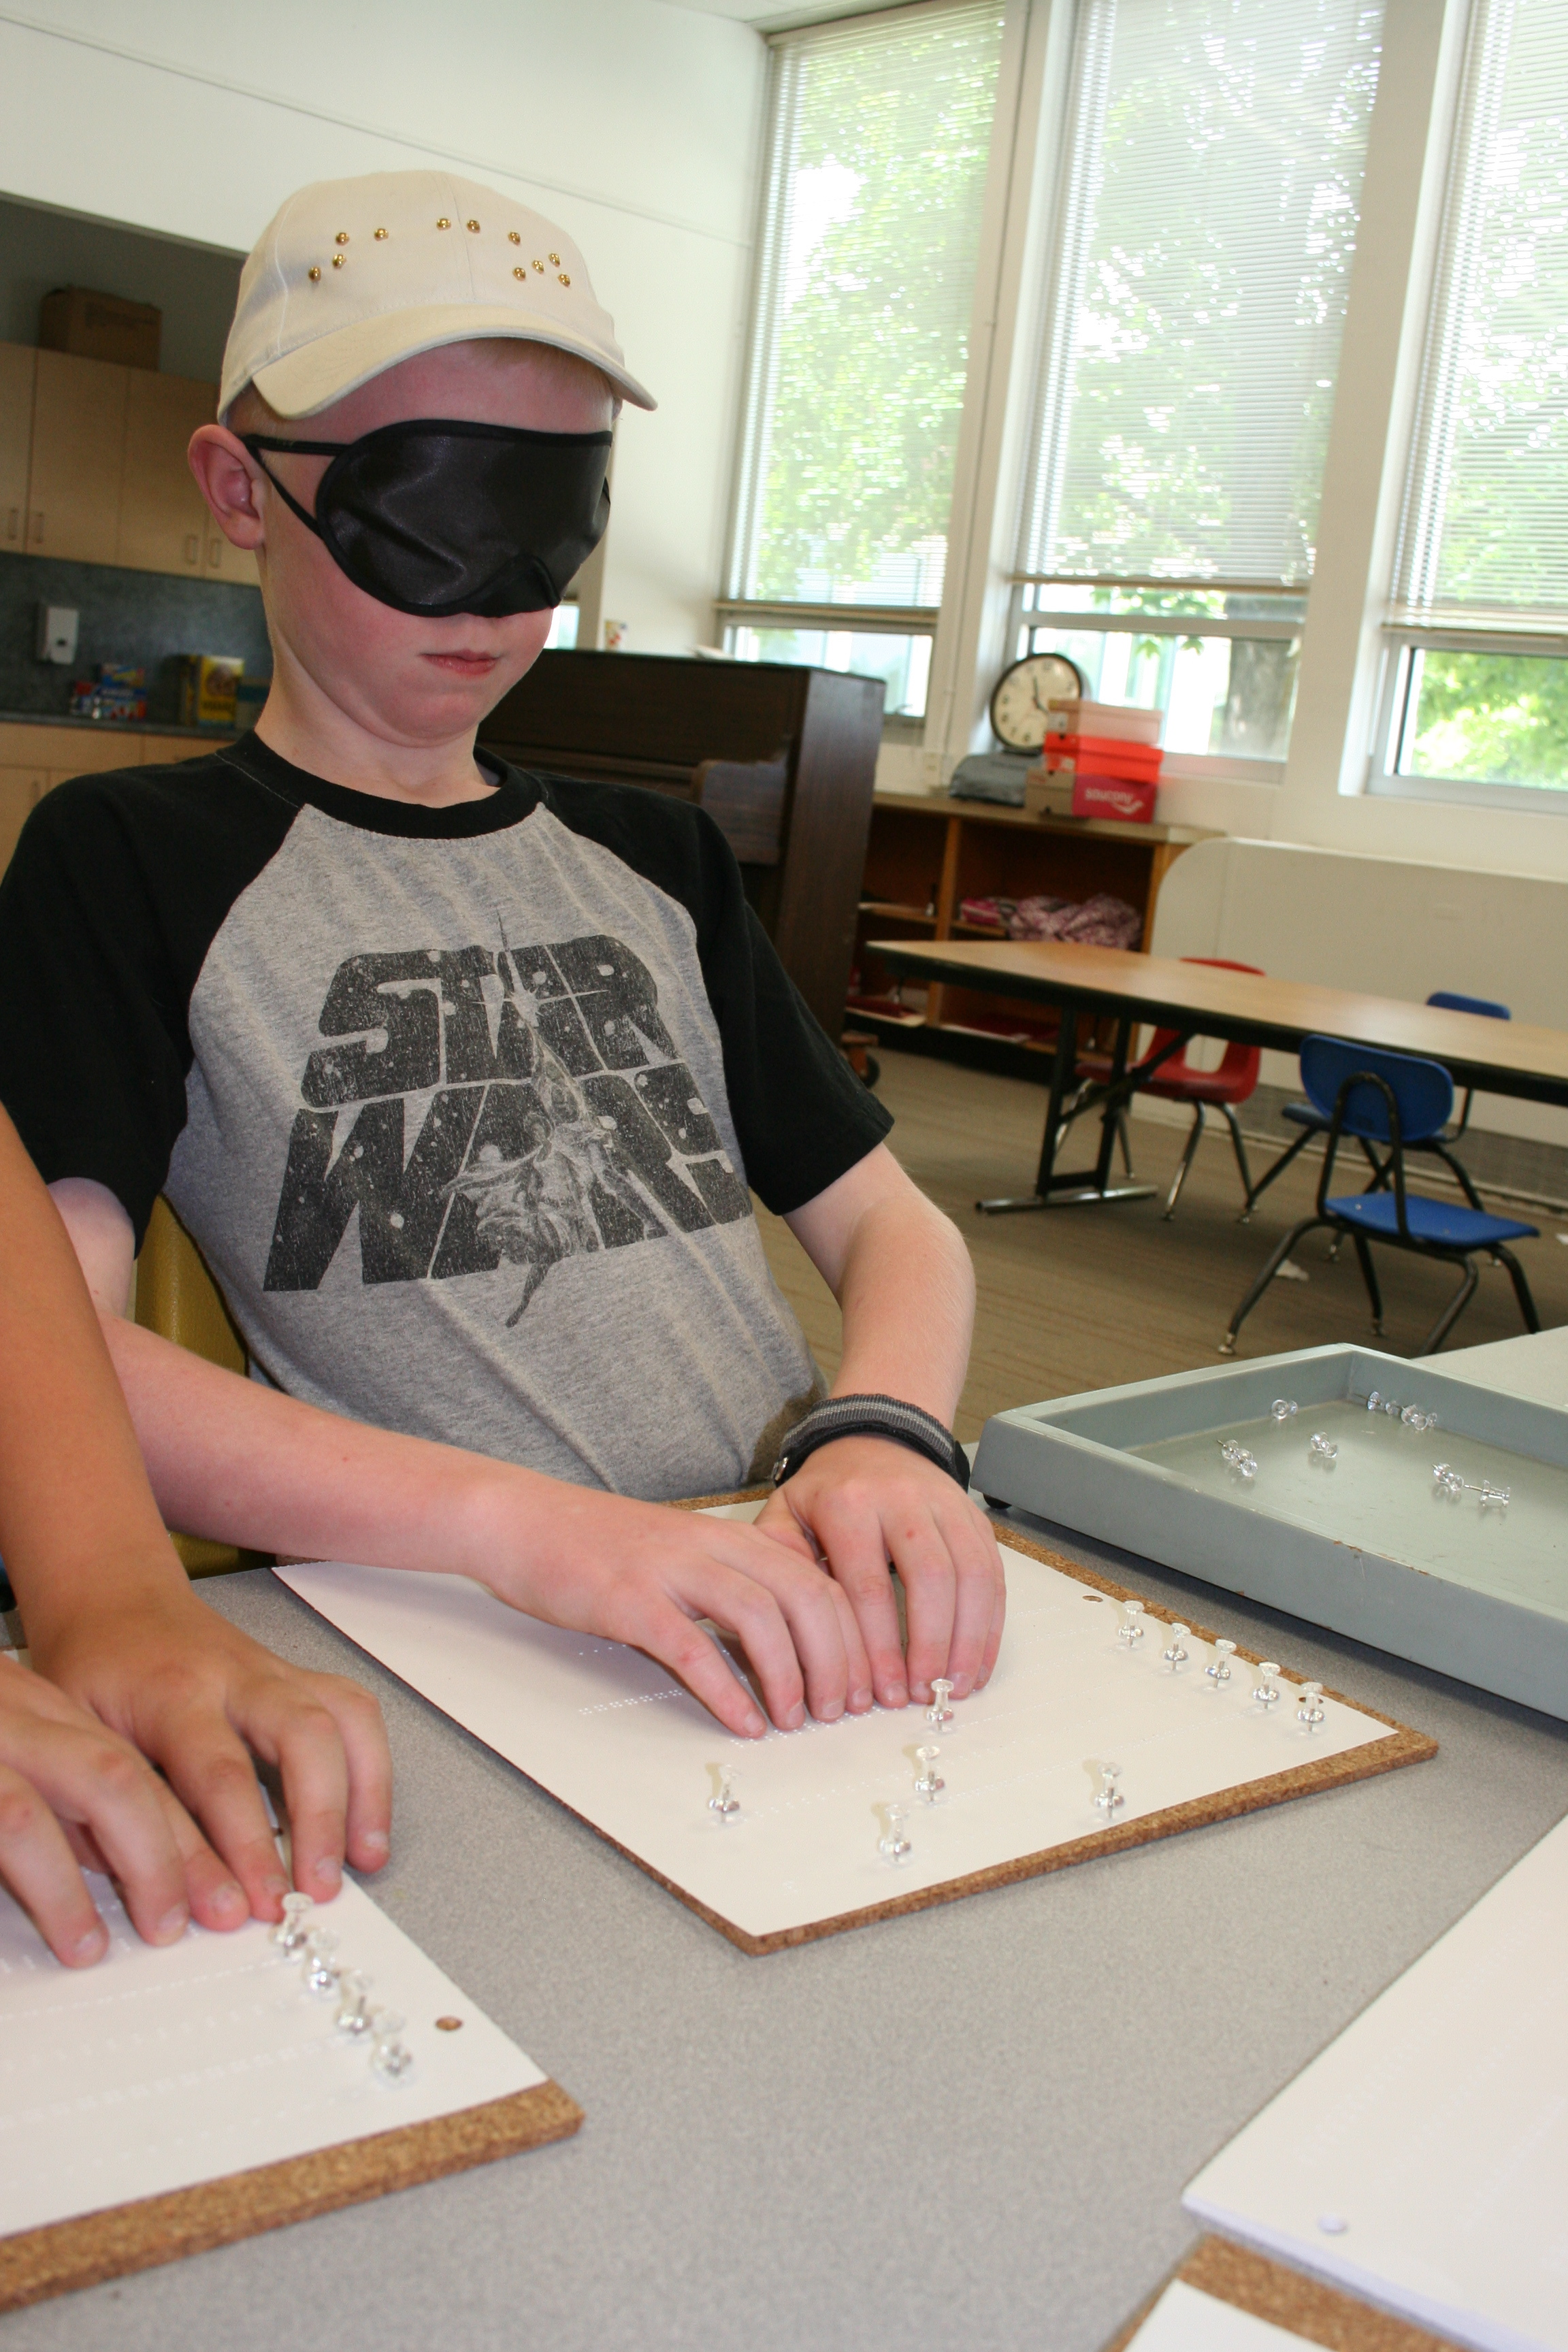 Jacob works on his Braille reading under sleep shades.